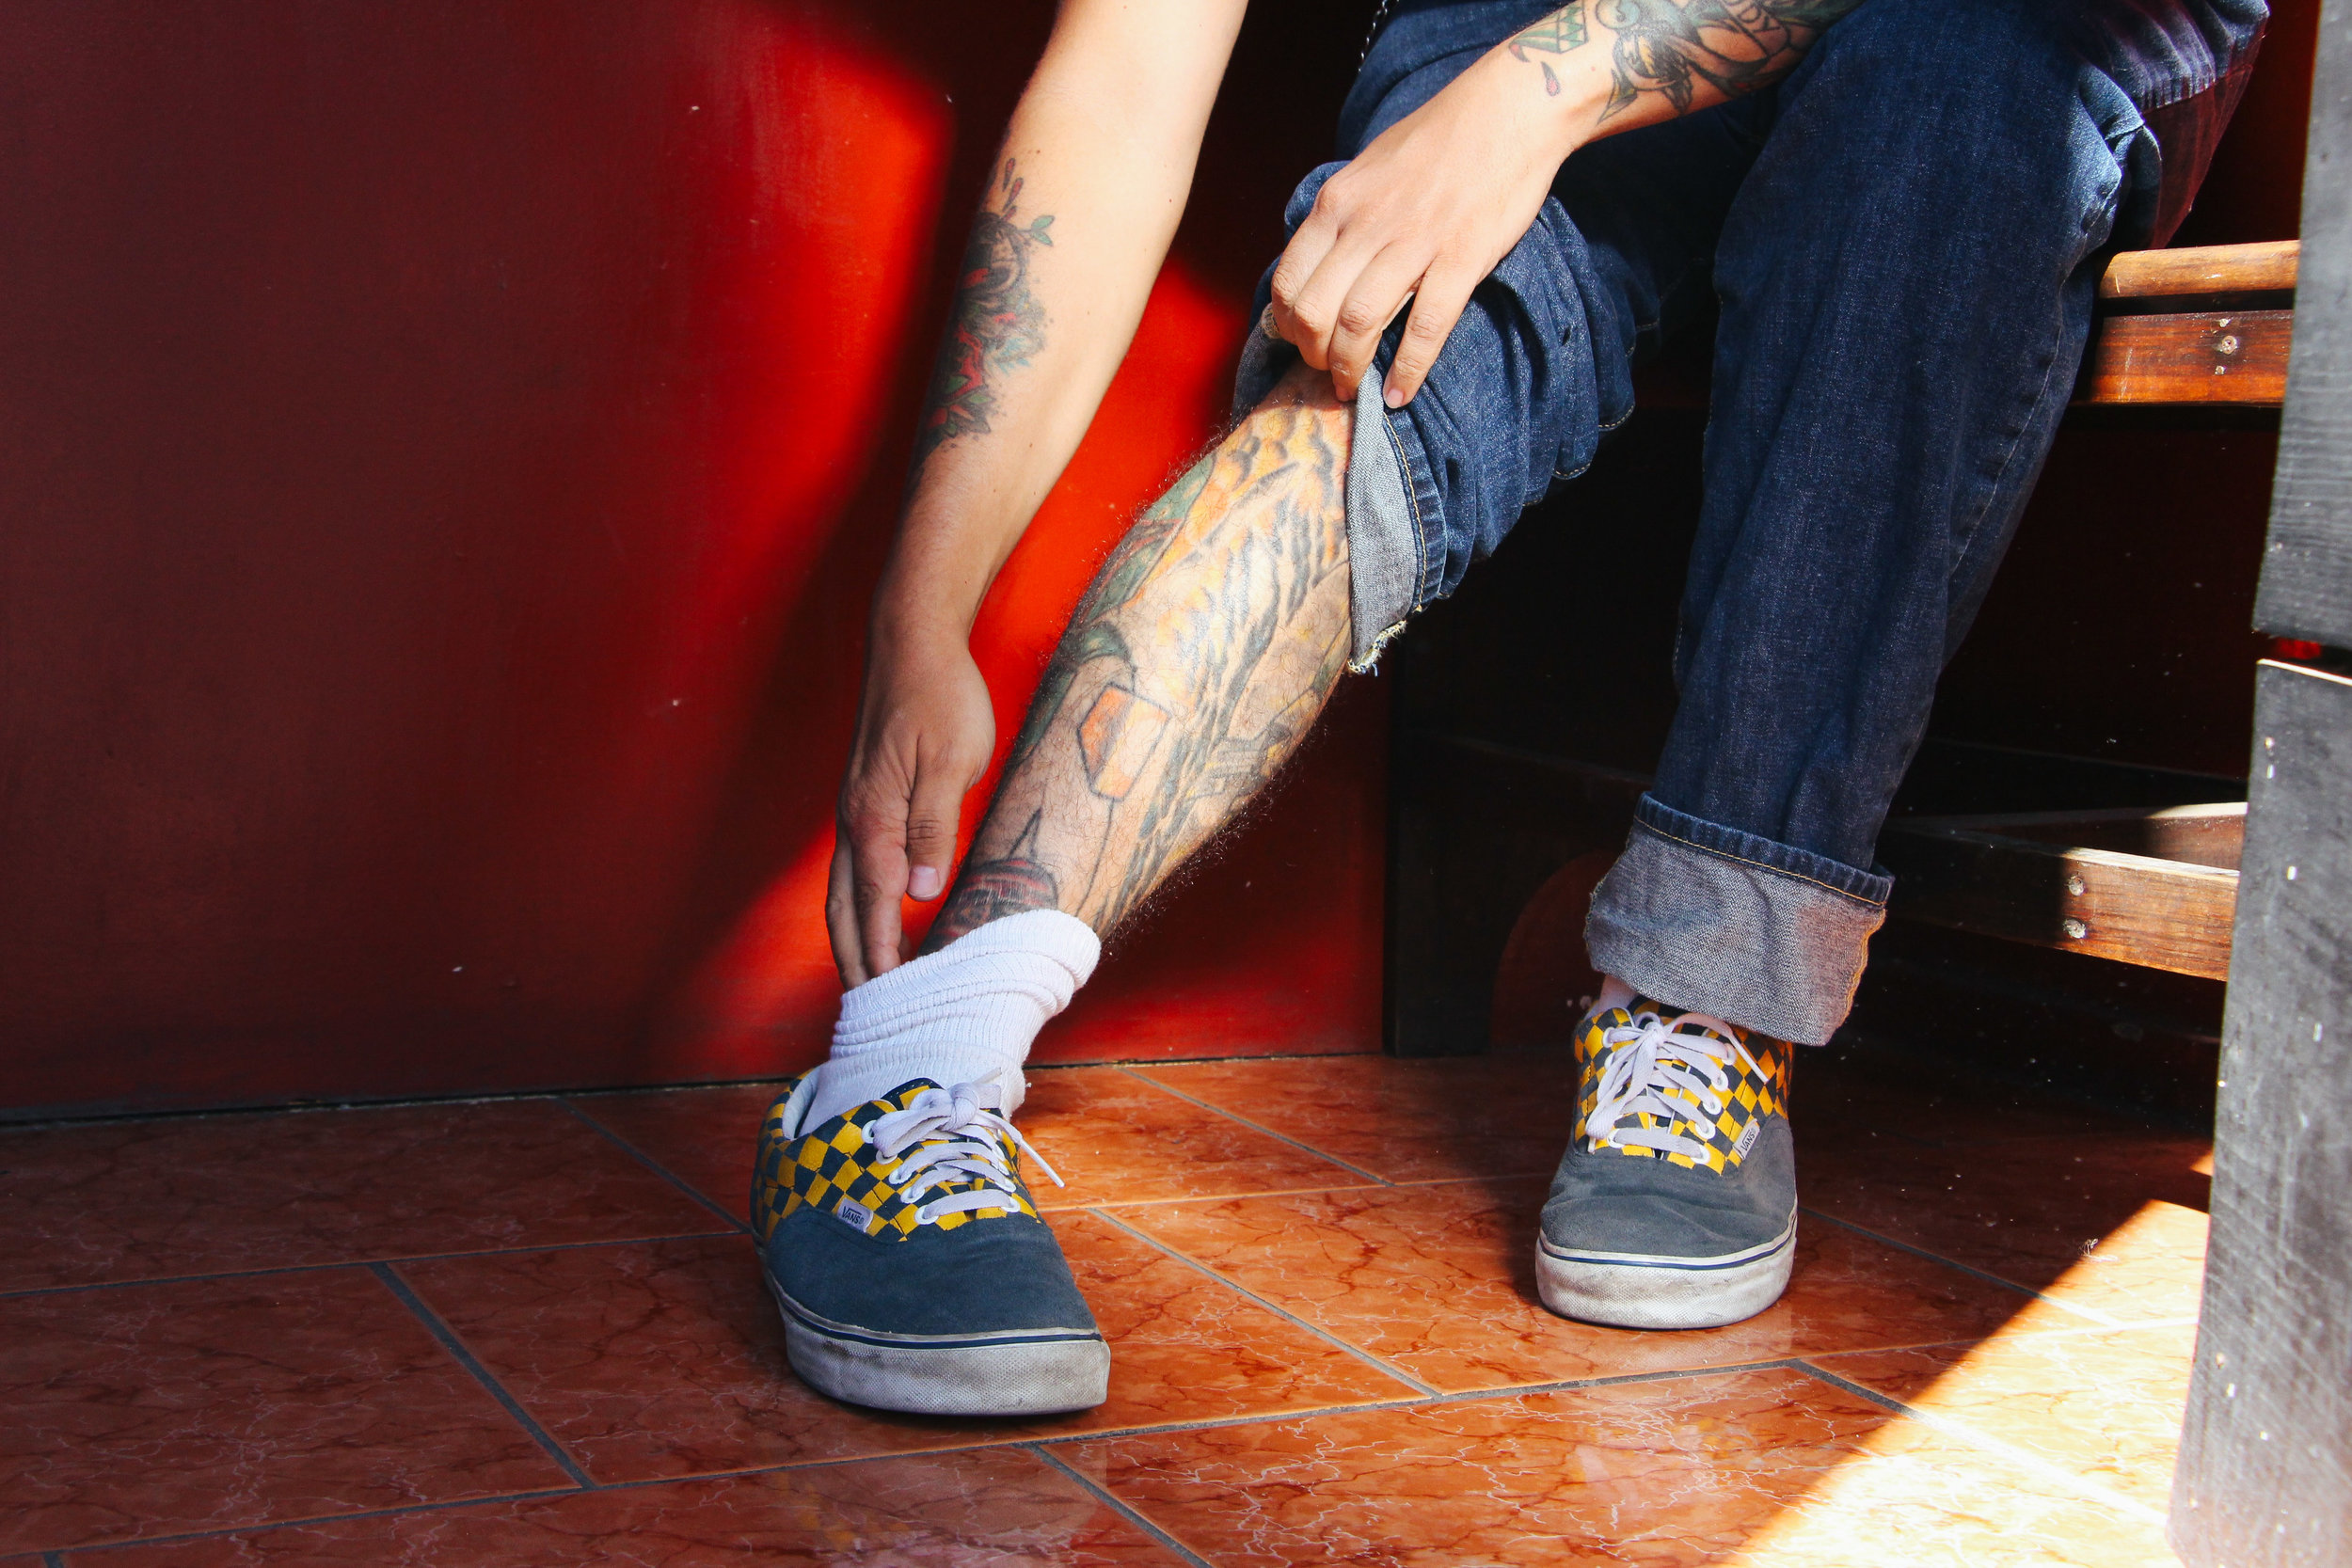 Photo by Kendall Soderstrom TATTOO ARTIST CARLOS WOLFOS ROLLS HIS JEANS TO EXPOSE HIS COLLECTION OF TATTOOS IN THE SMALL LOBBY OF ANTIGUA TATTOO IN ANTIGUA, GUATEMALA ON JAN. 13. HIS FIRST TATTOO OF A WOLF DISPLAYS ITSELF ON HIS RIGHT SHOULDER.